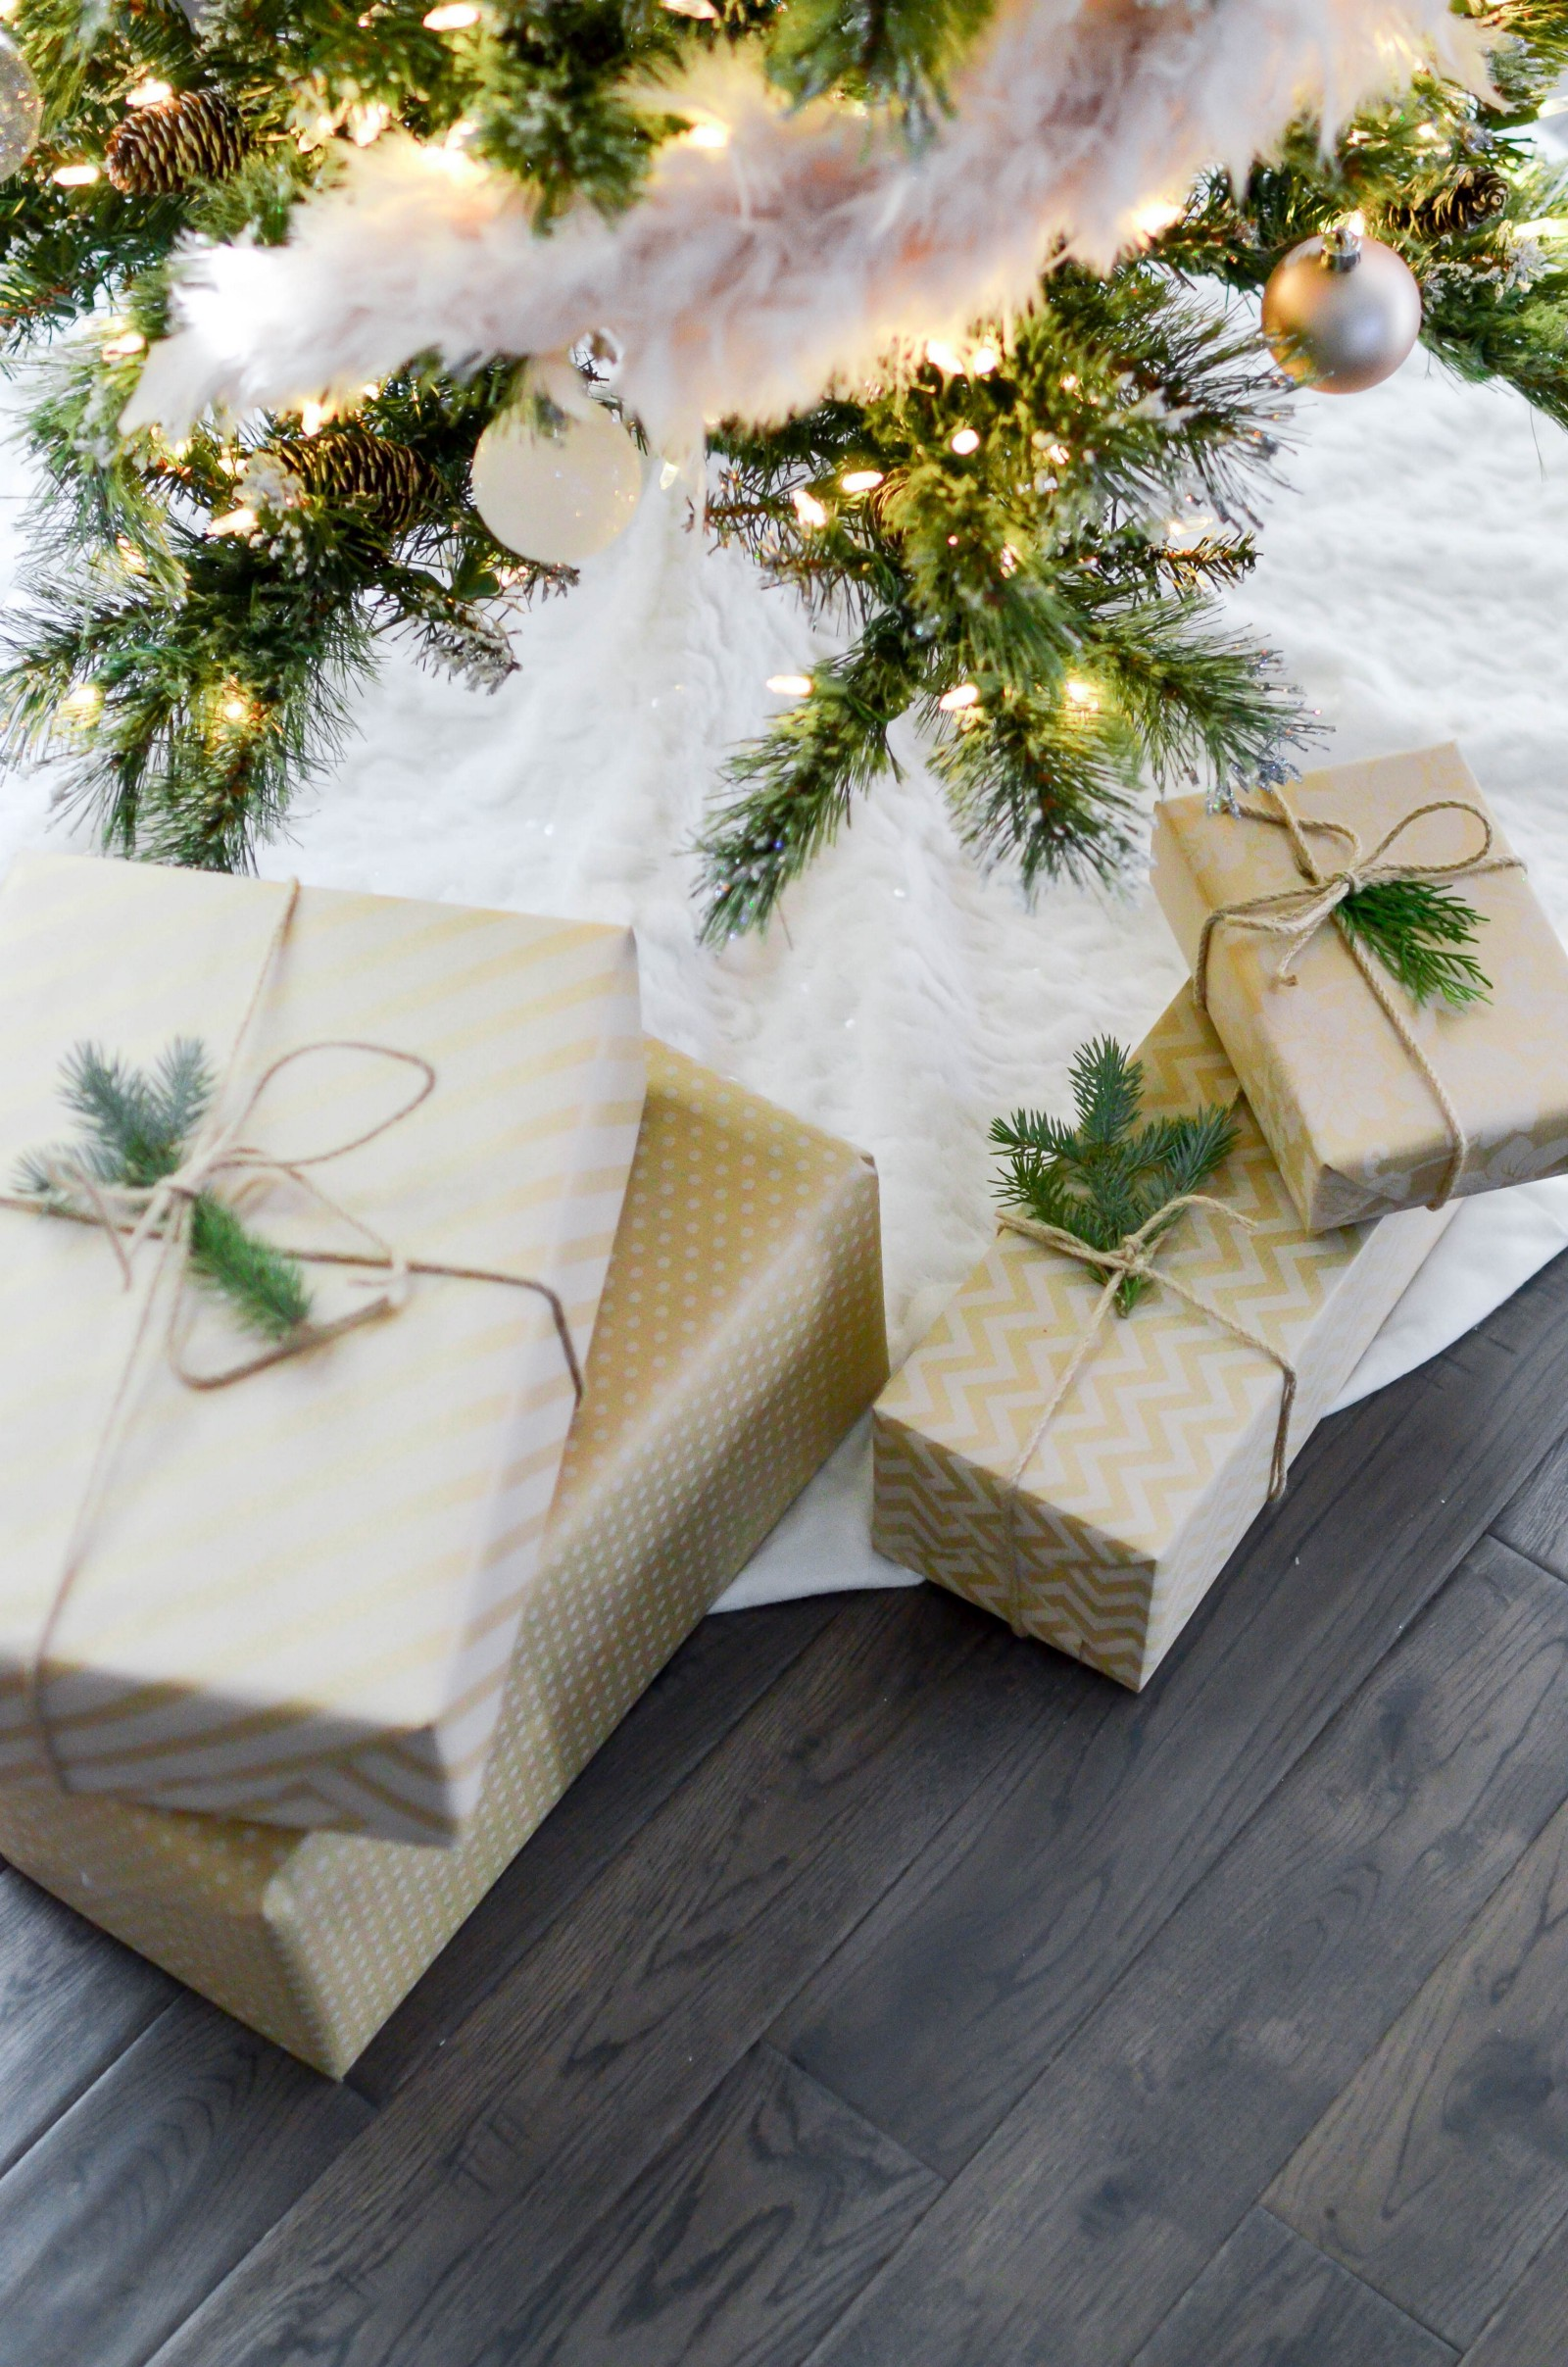 Creative, Useful, and Meaningful Gift Guide that wont